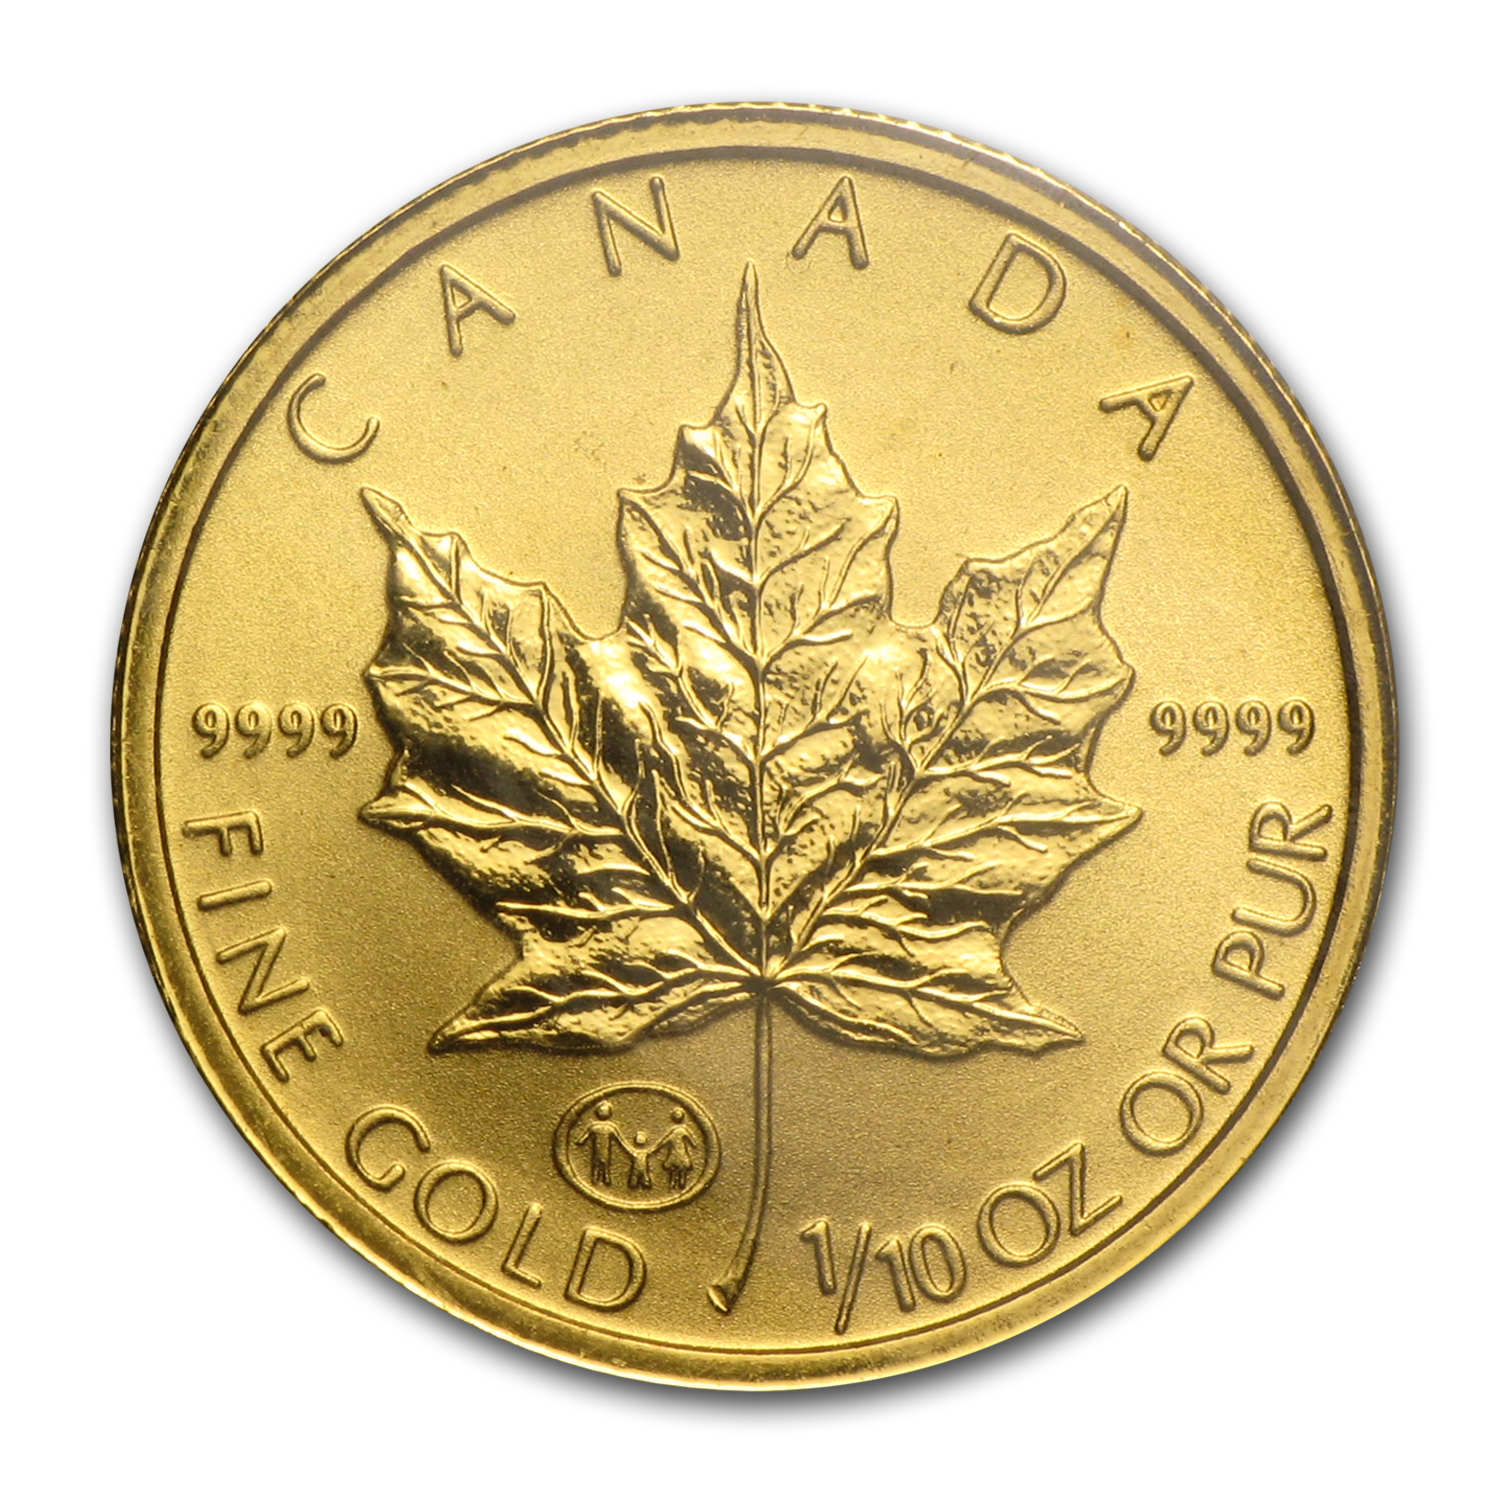 1997 Canada 1/10 oz Gold Maple Leaf BU (Family Privy)